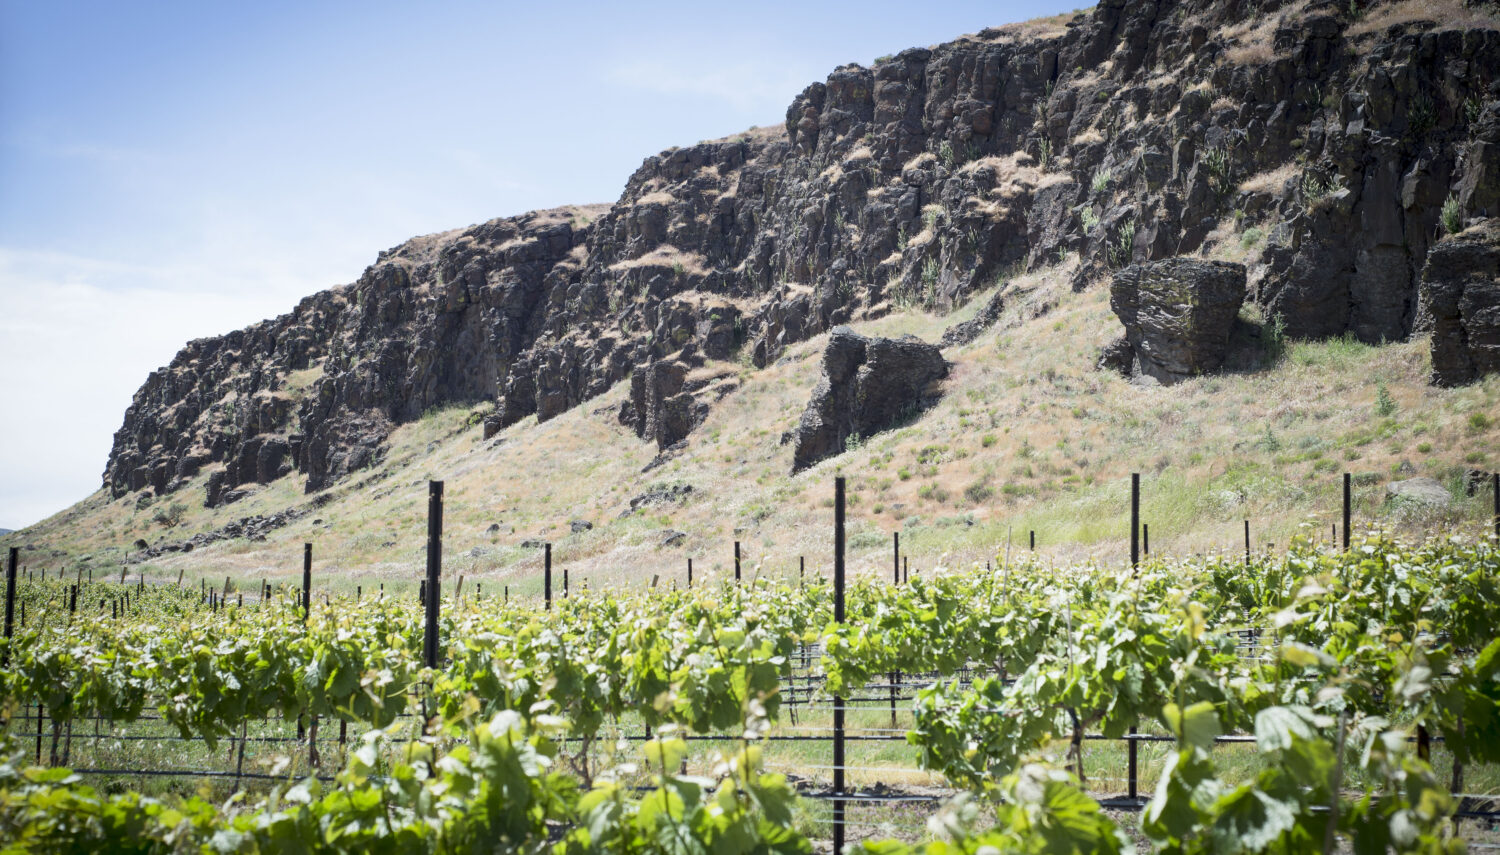 A rocky cliff hangs over several rows of green grape vines with posts under a blue sky.